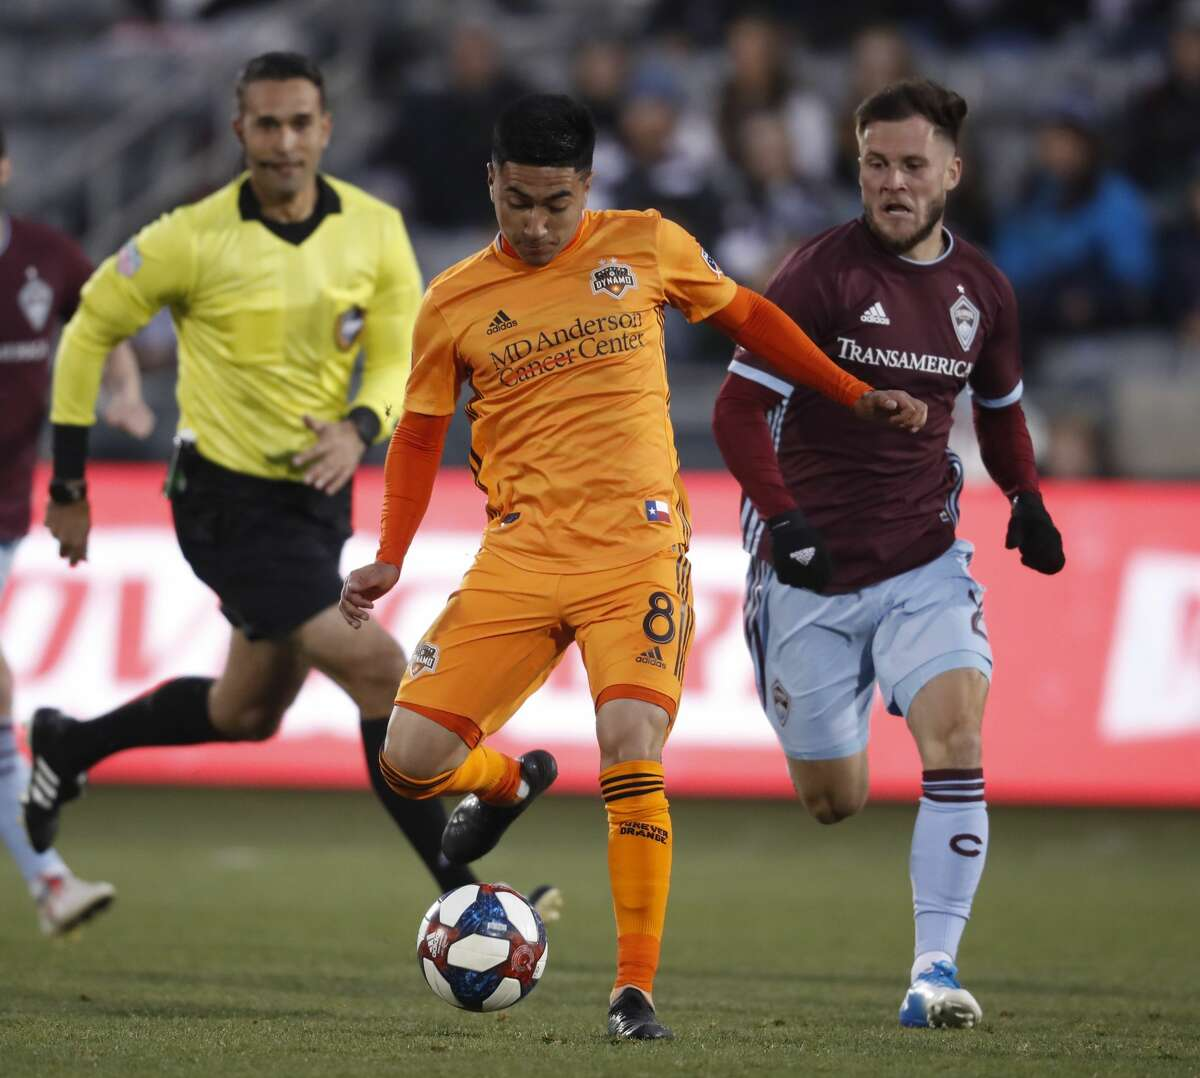 Houston Dynamo midfielder Memo Rodriguez, center, passes the ball as Colorado Rapids defender Keegan Rosenberry, right, pursues in the first half of a MLS soccer match Saturday, March 30, 2019, in Commerce City, Colo. (AP Photo/David Zalubowski)